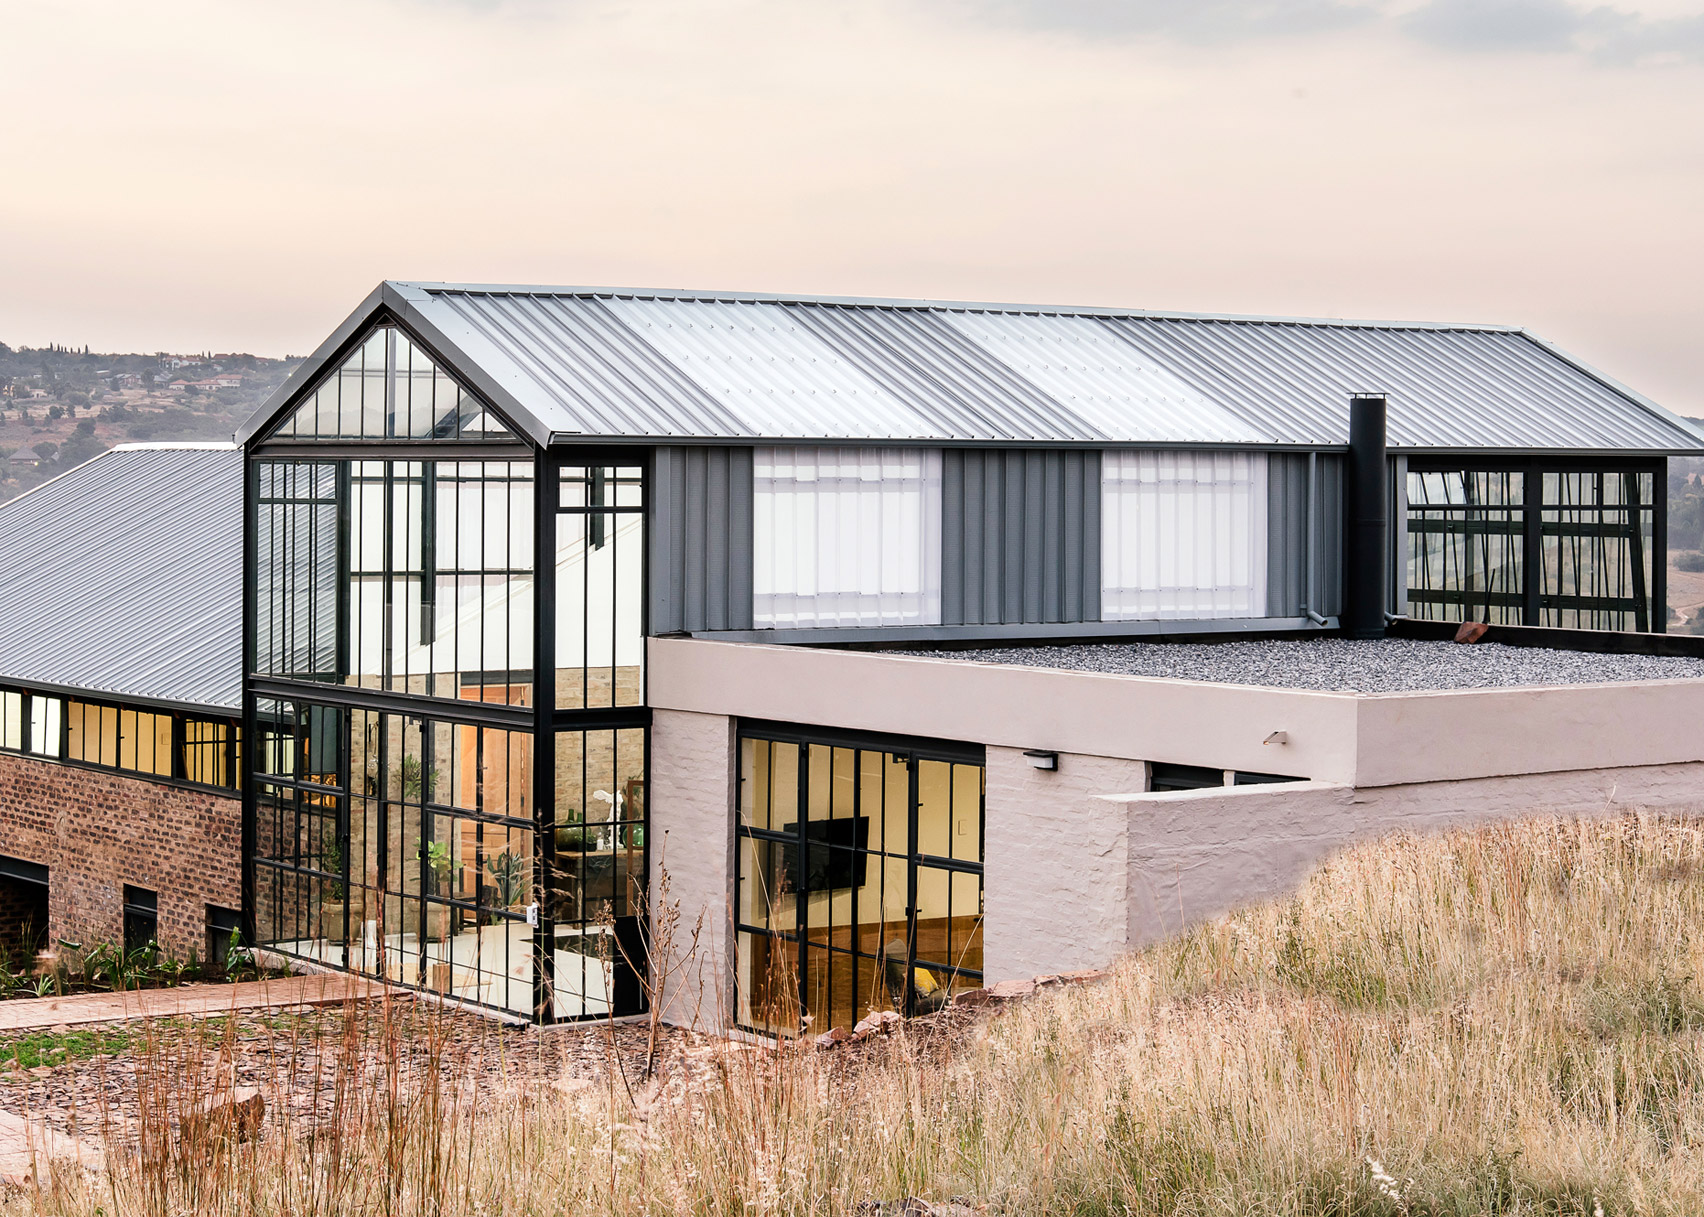 10 Off Grid Homes For A Self Sufficient Lifestyle